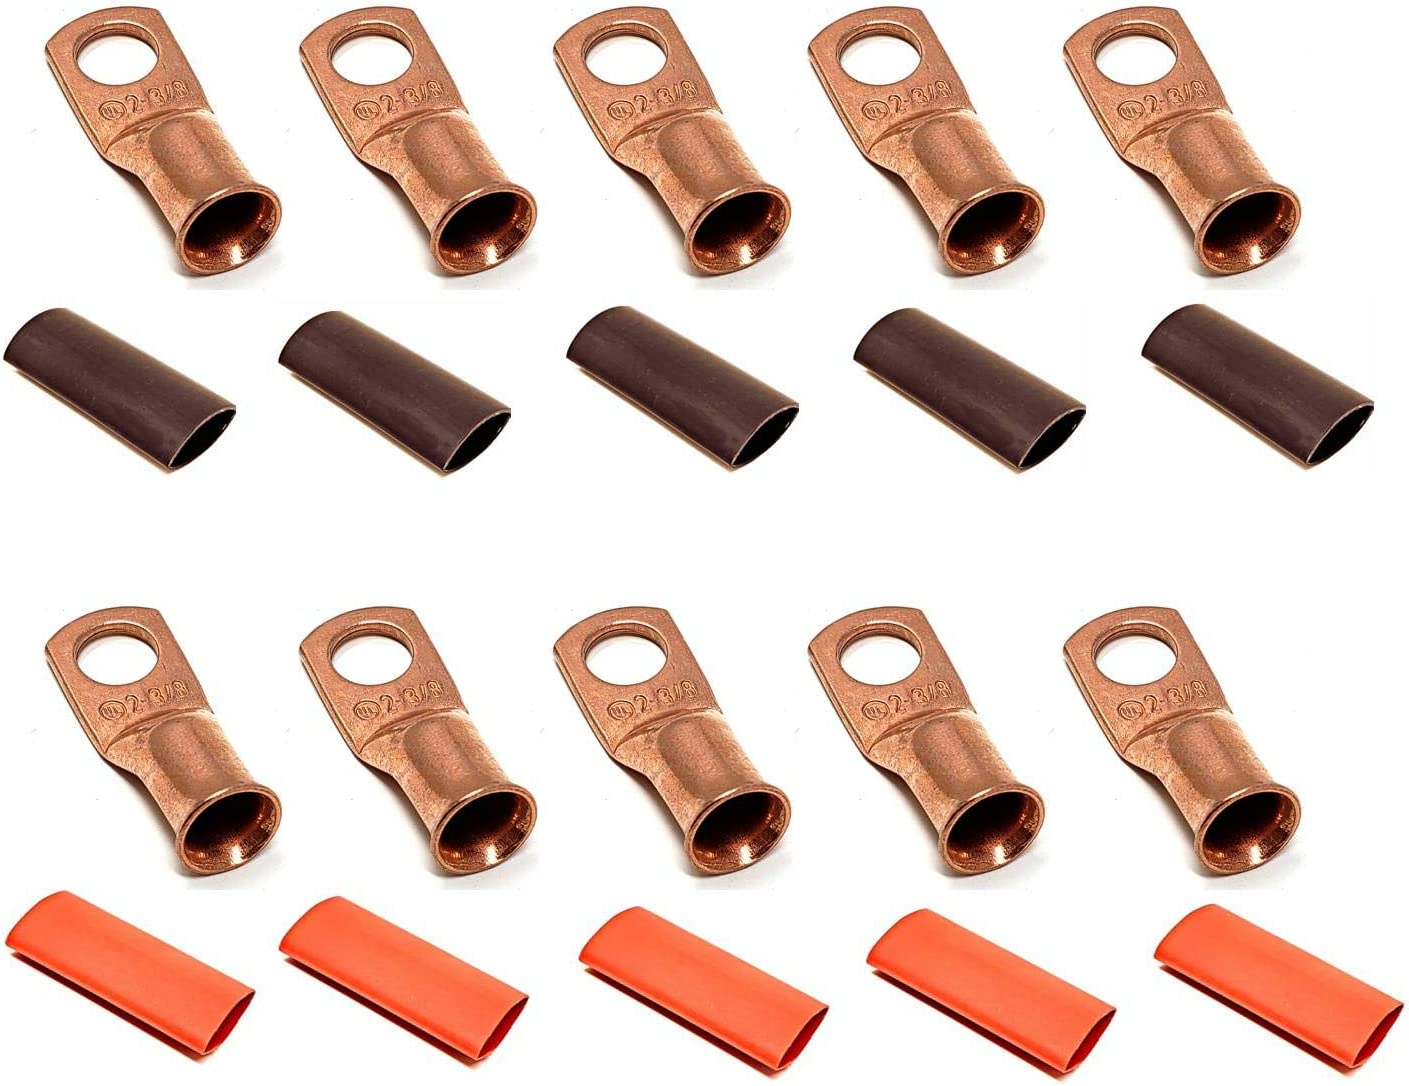 QTY100 4GA SHRINK TUBE TINNED COPPER INVERTER BATTERY CABLE RING TERMINAL 2AWG